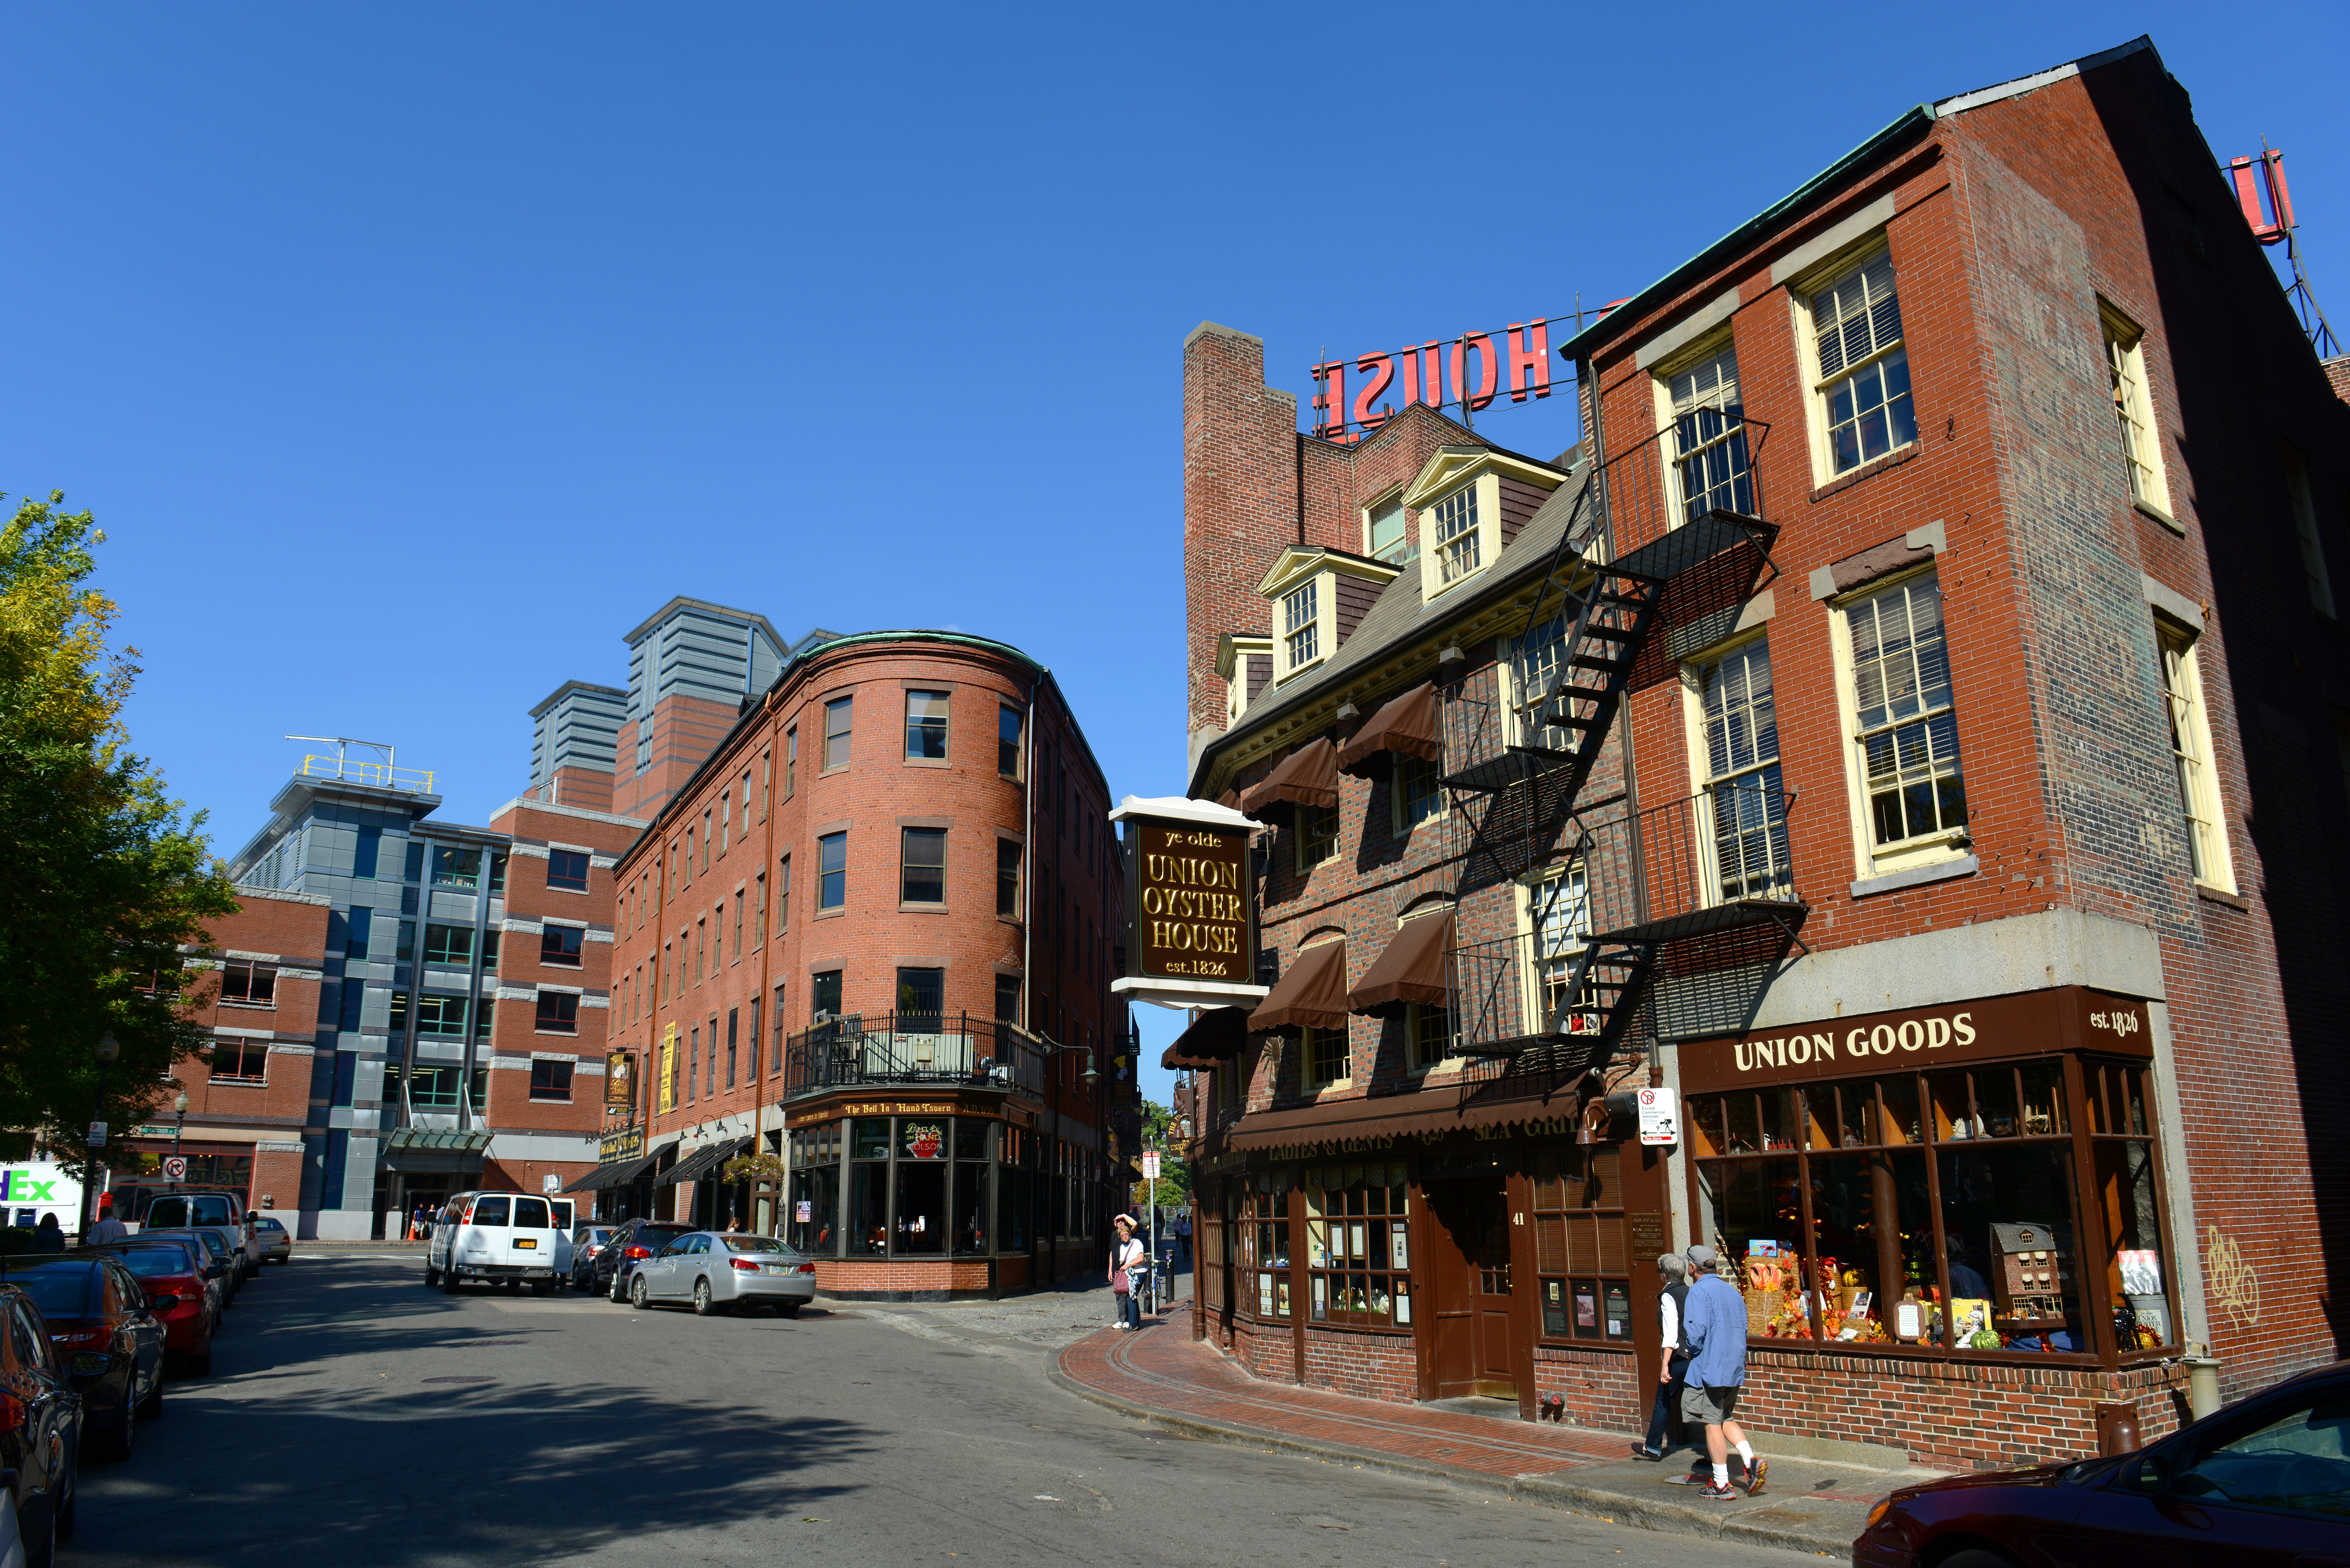 The exterior of a three-story building that houses a restaurant on the first floor.